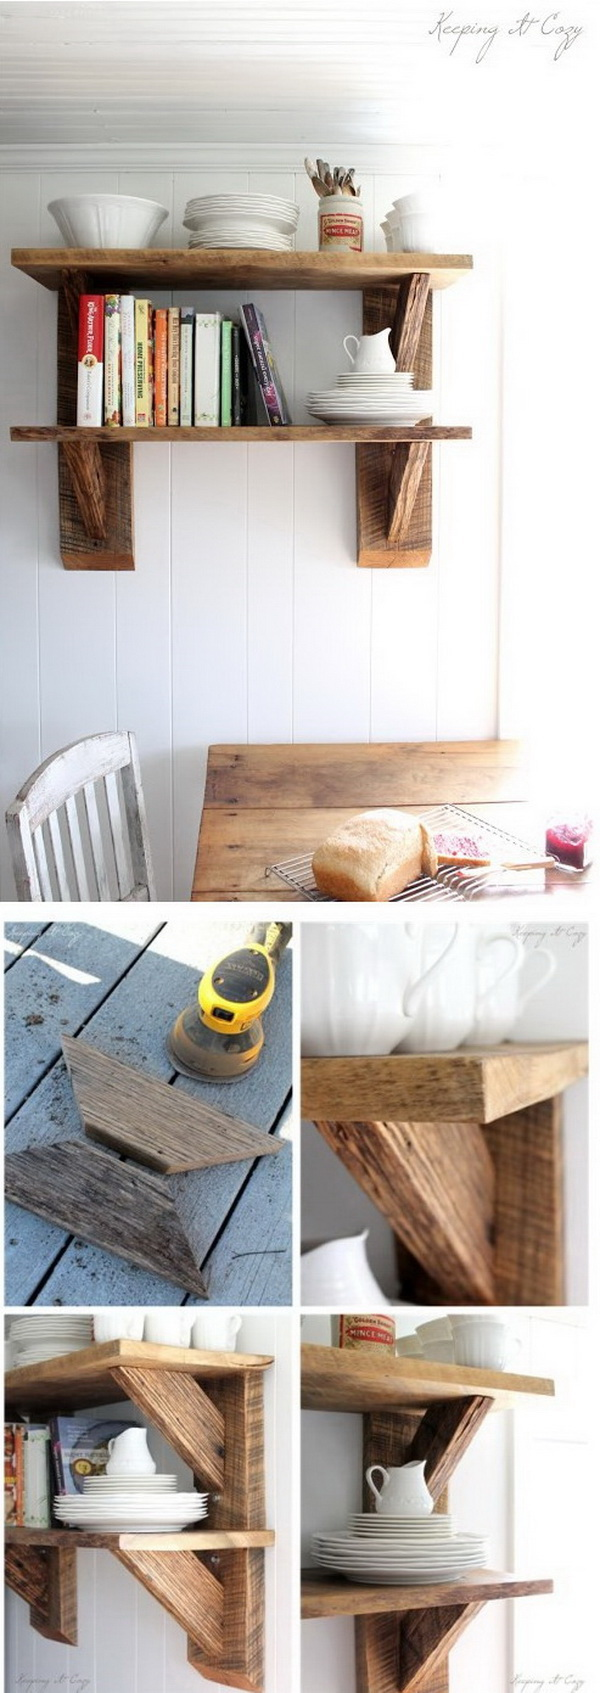 Reclaimed Wood Kitchen Shelves. Make a little shelving unit for one wall in your kitchen with some old barn wood. It not only provides extra storage but also looks great at your kitchen.